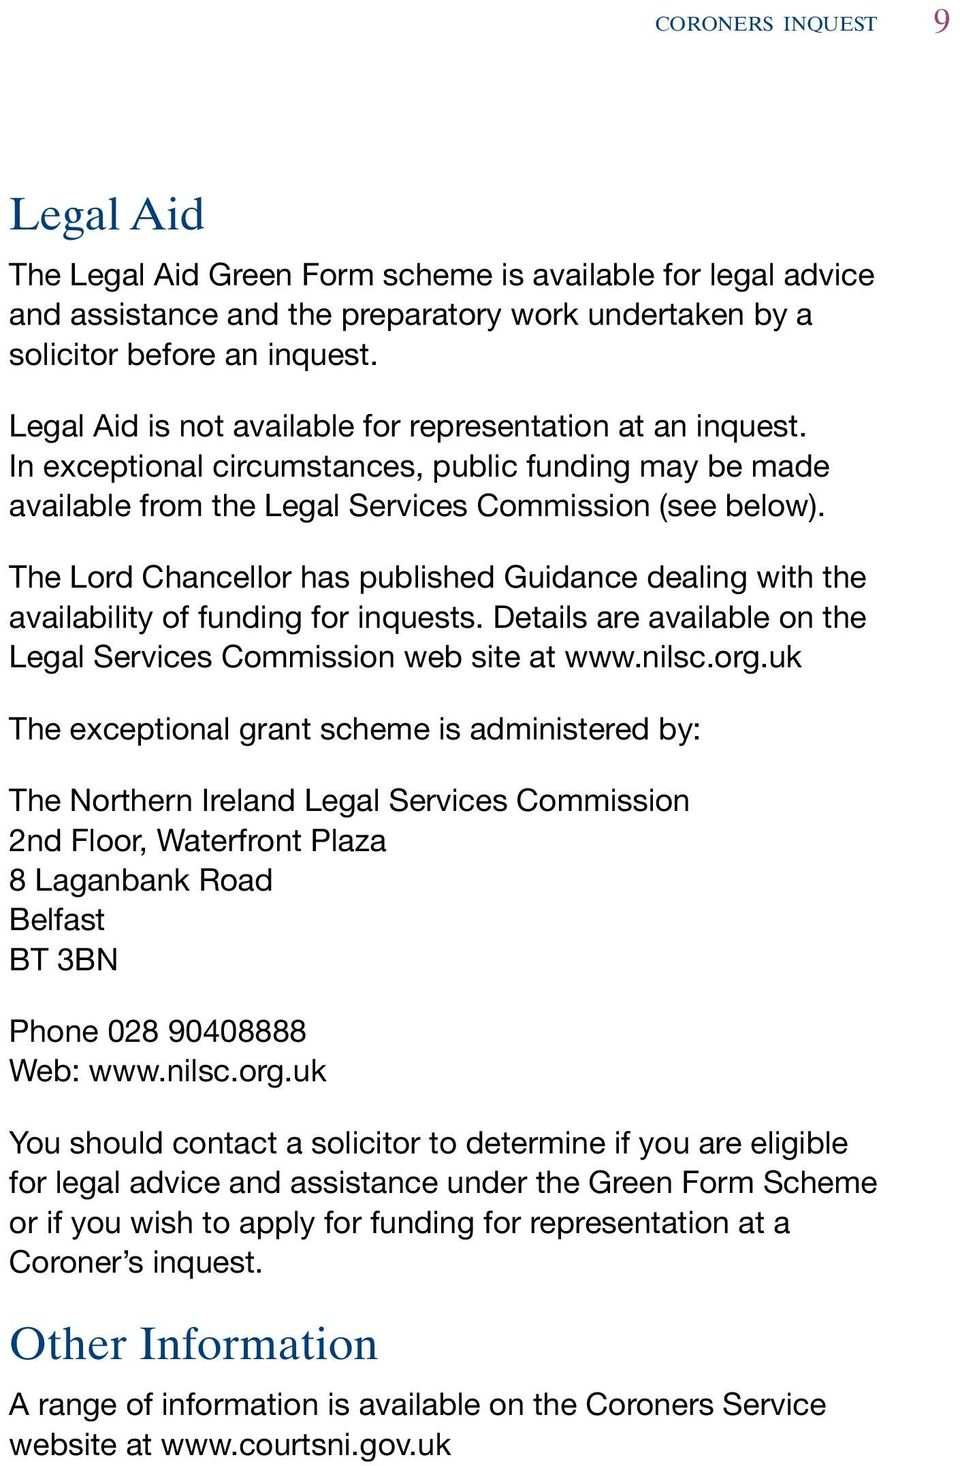 The Lord Chancellor has published Guidance dealing with the availability of funding for inquests. Details are available on the Legal Services Commission web site at www.nilsc.org.